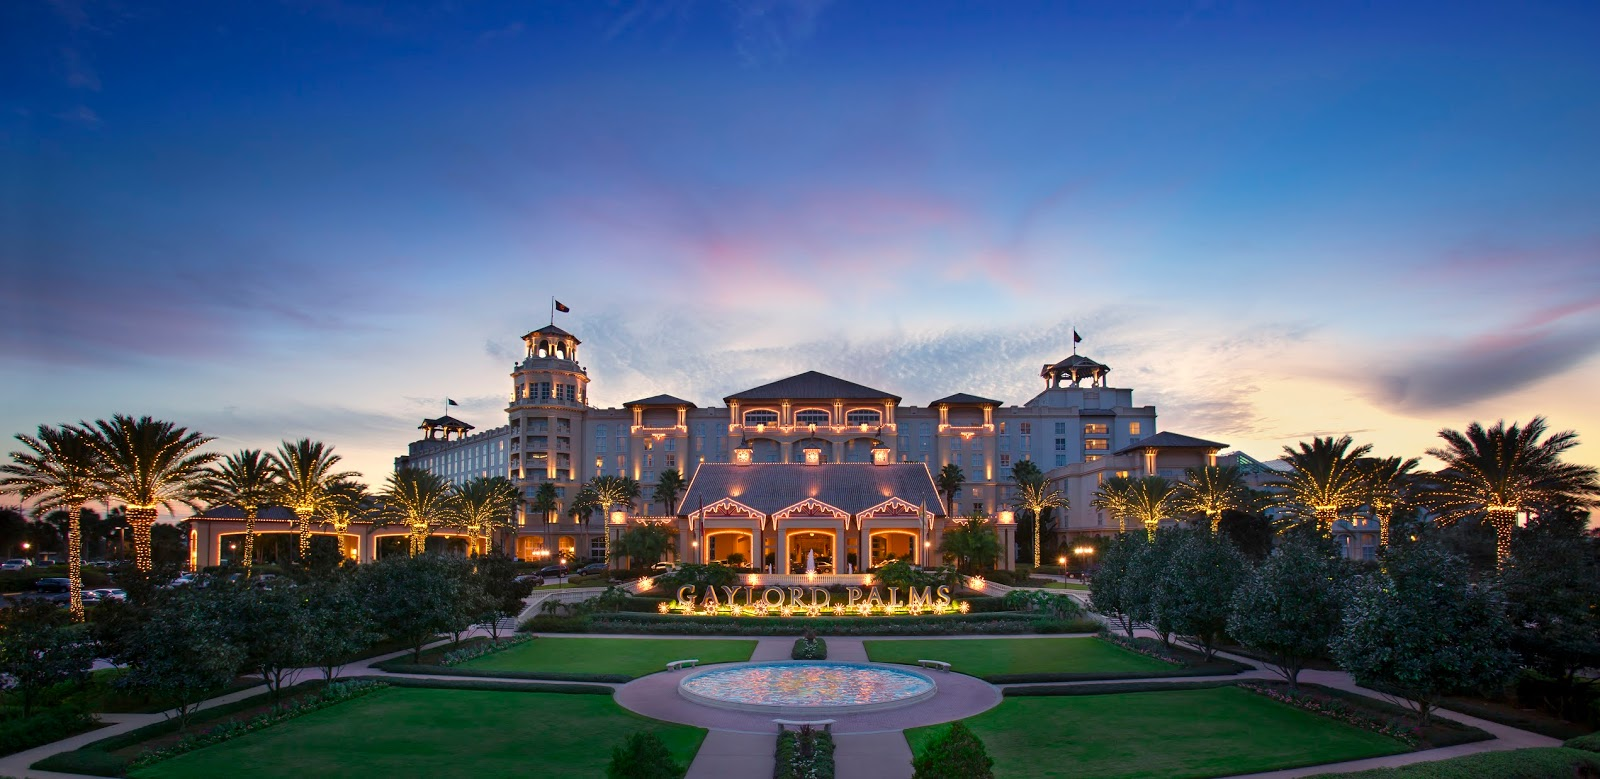 Gaylord Palms Resort Unveils New Signature Immersive Pop-Up Christmas Experience